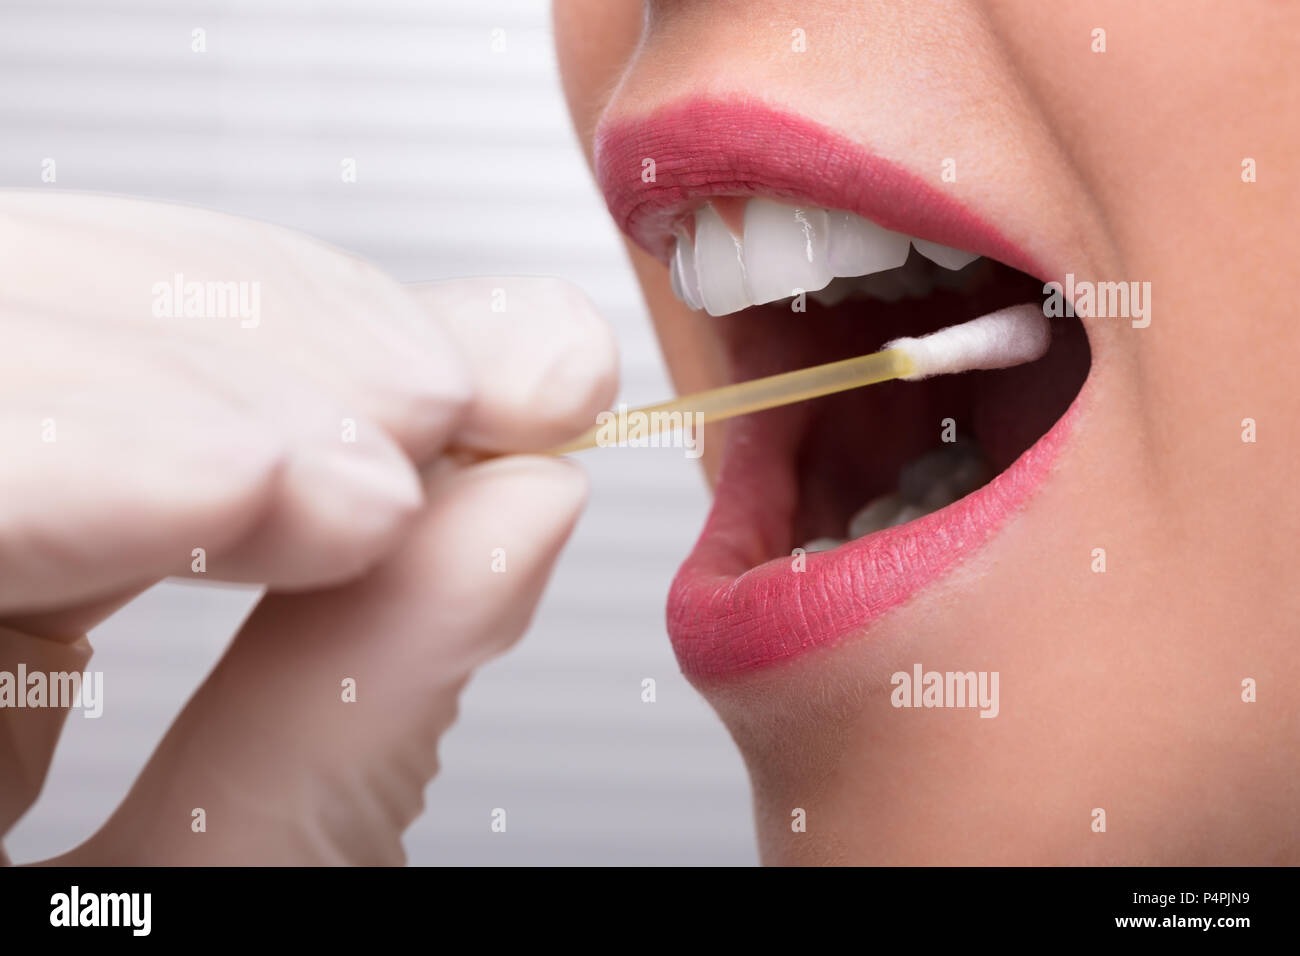 Dentist's Hand Taking Saliva Test From Woman's Mouth With Cotton Swab - Stock Image